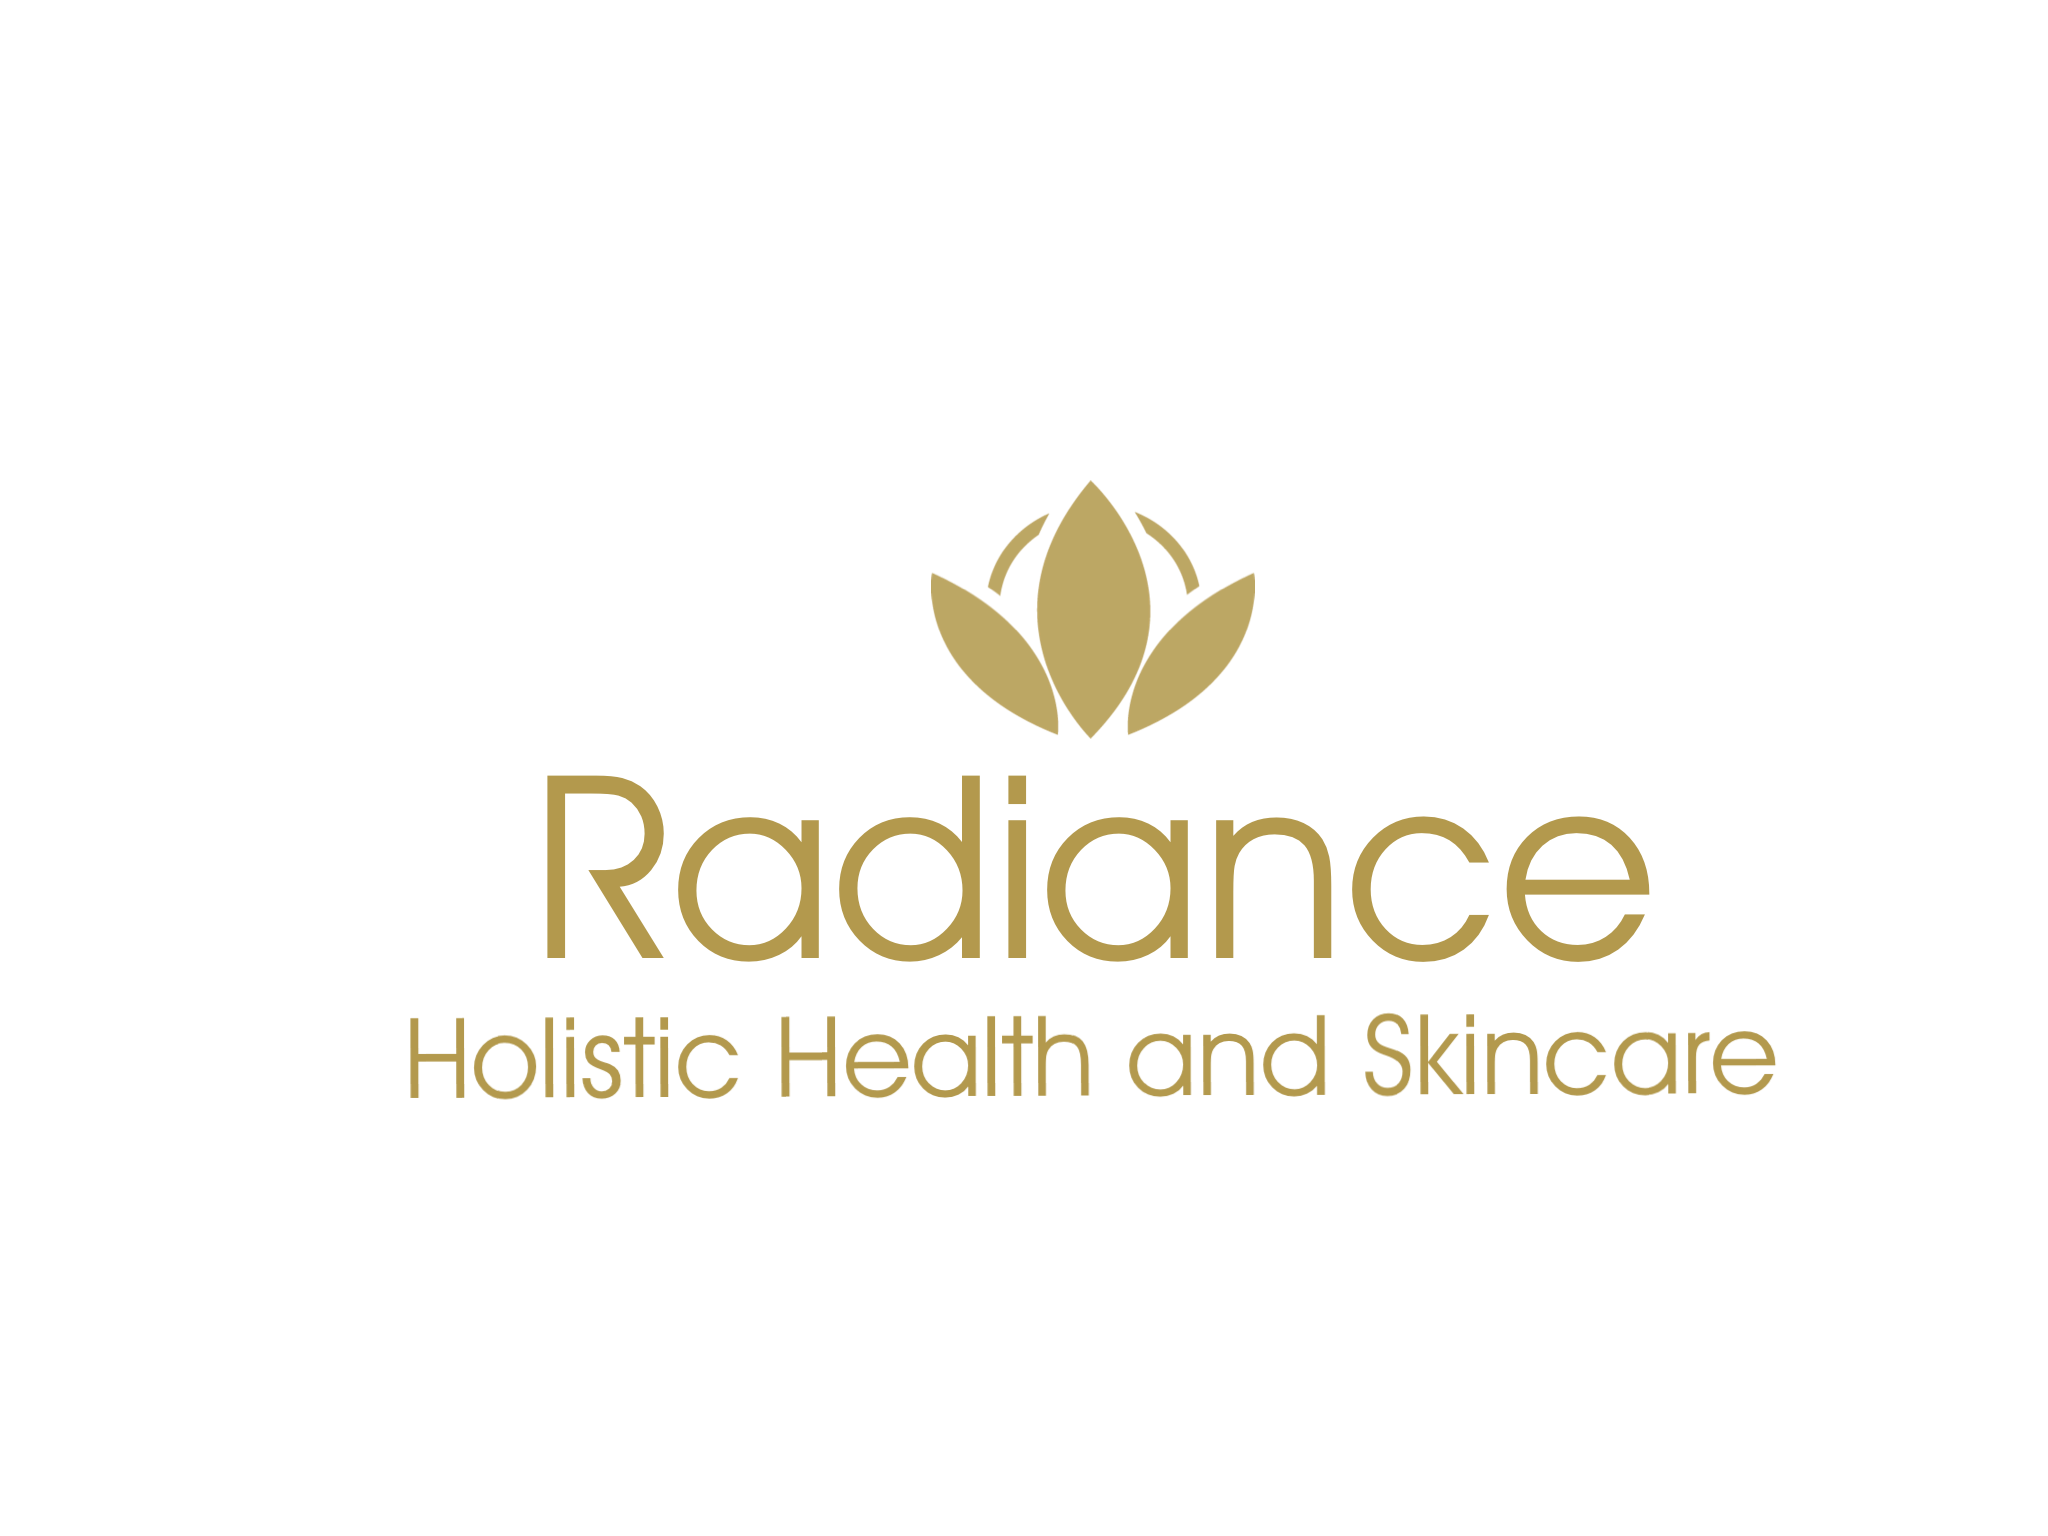 Radiance Holistic Health and Skincare